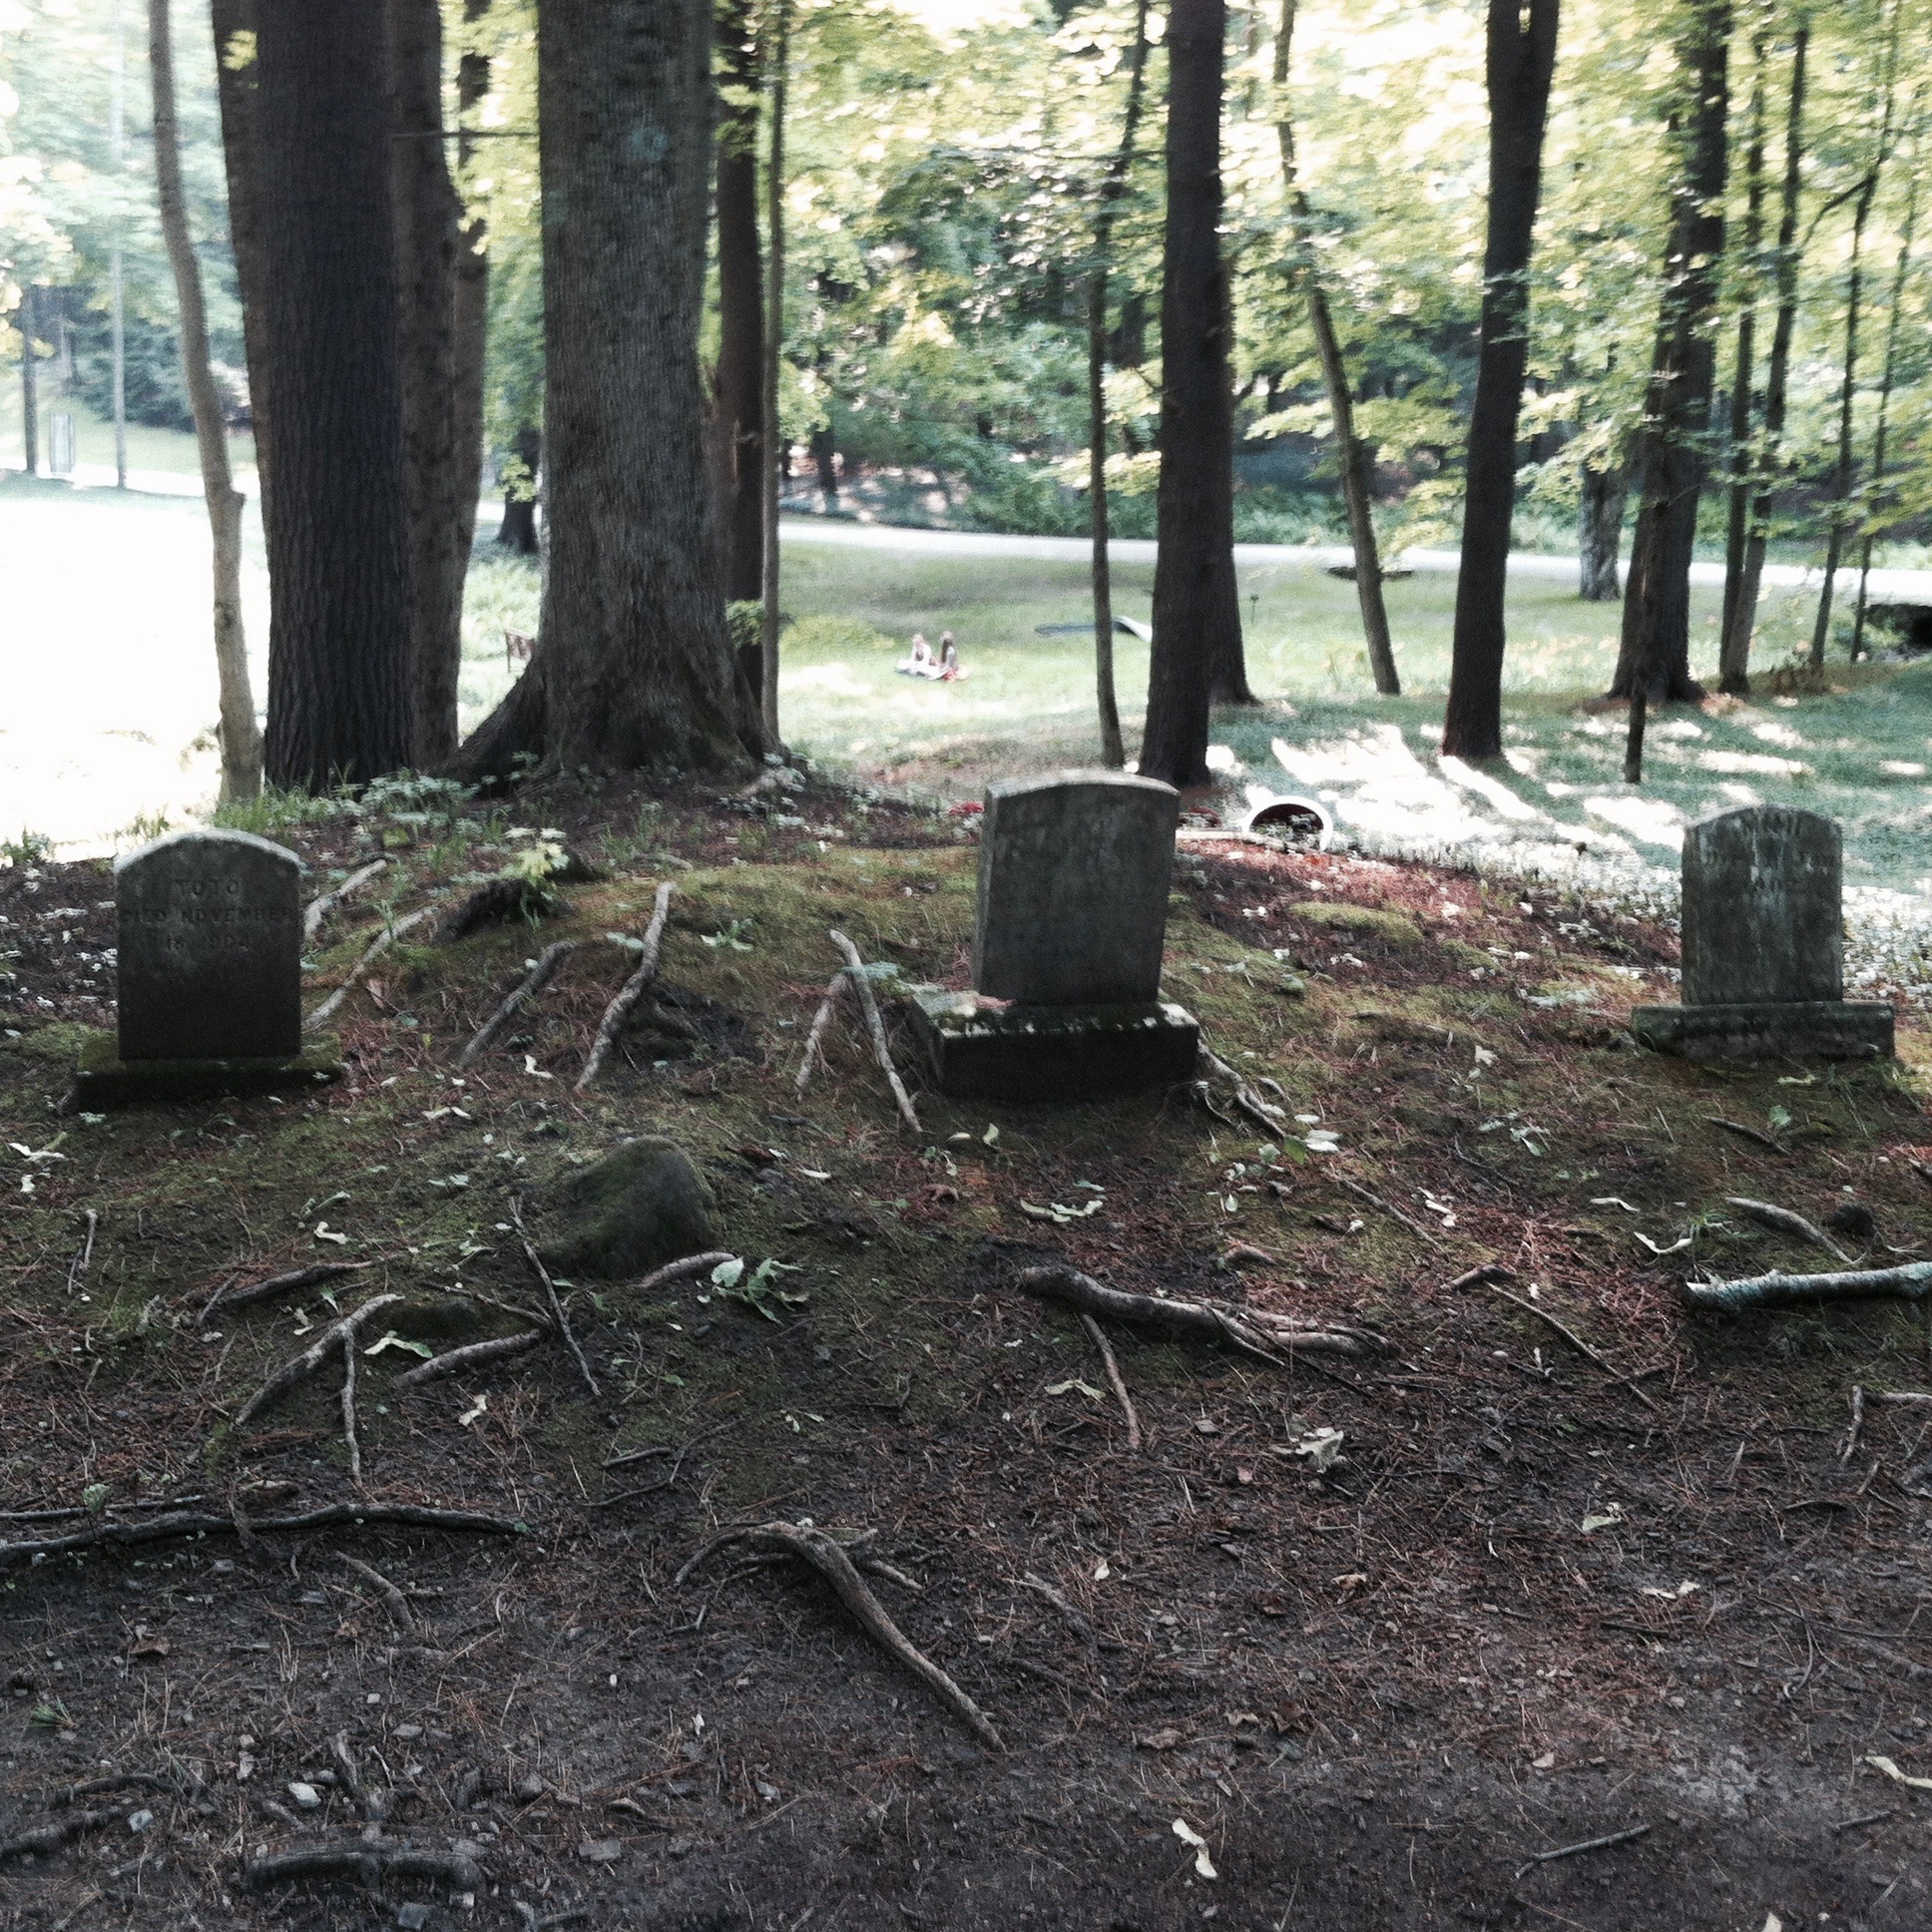 On the far left, the tombstone of Toto, who died November 18th, 1904. — N.M-Y. '15